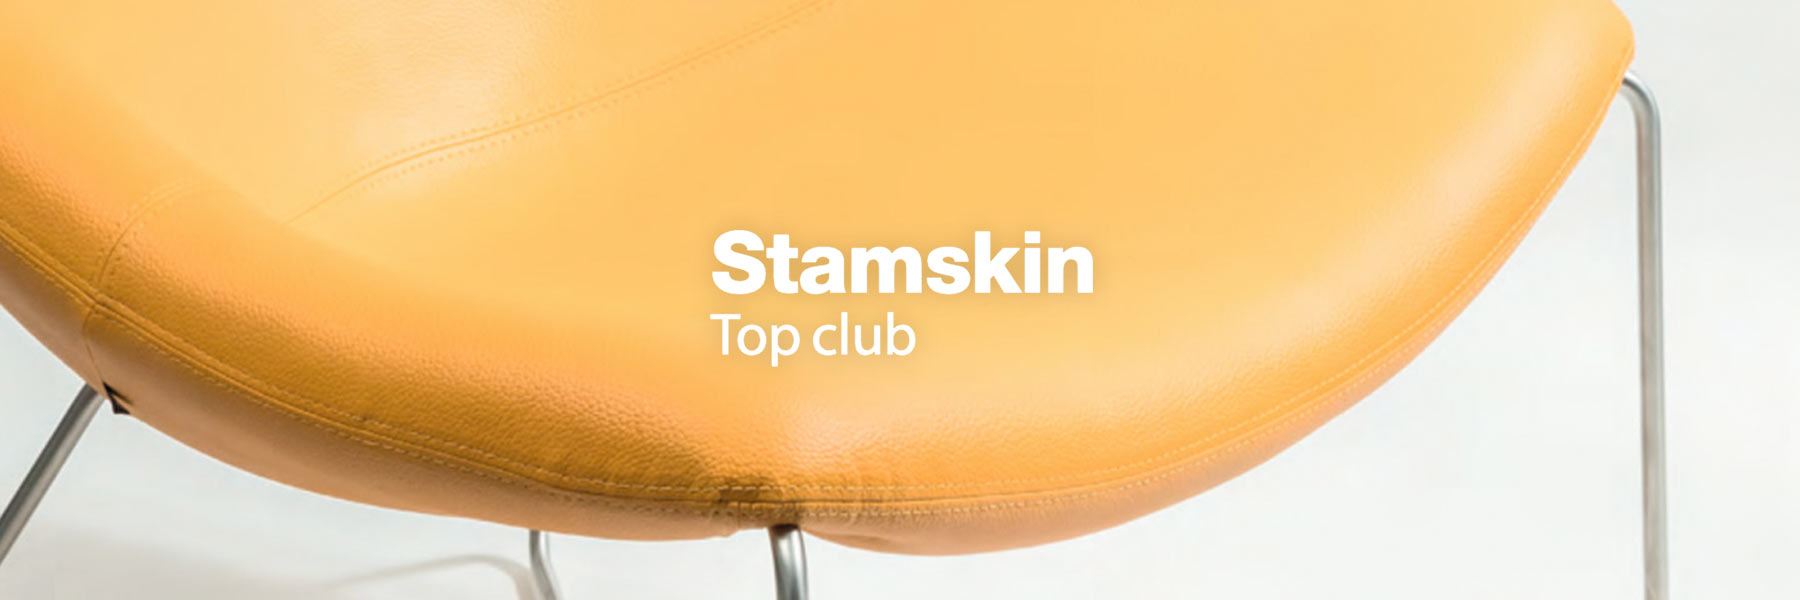 Serge Ferrari Stamskin Top Club header